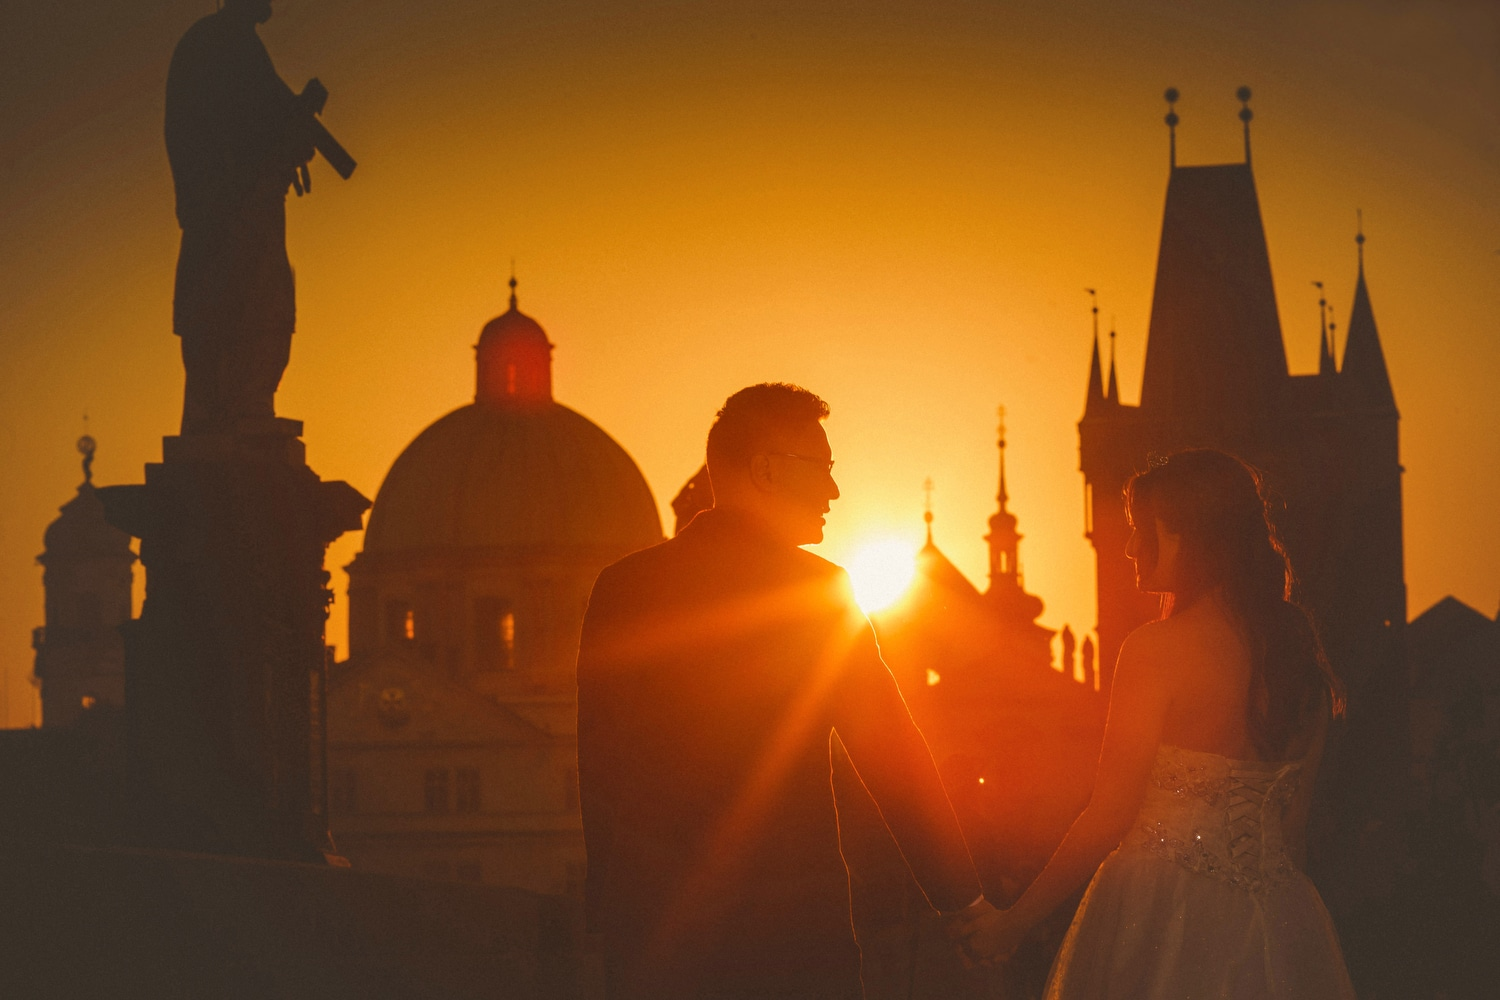 a sunrise & sunset pre-wedding portrait session in Prague with K+R